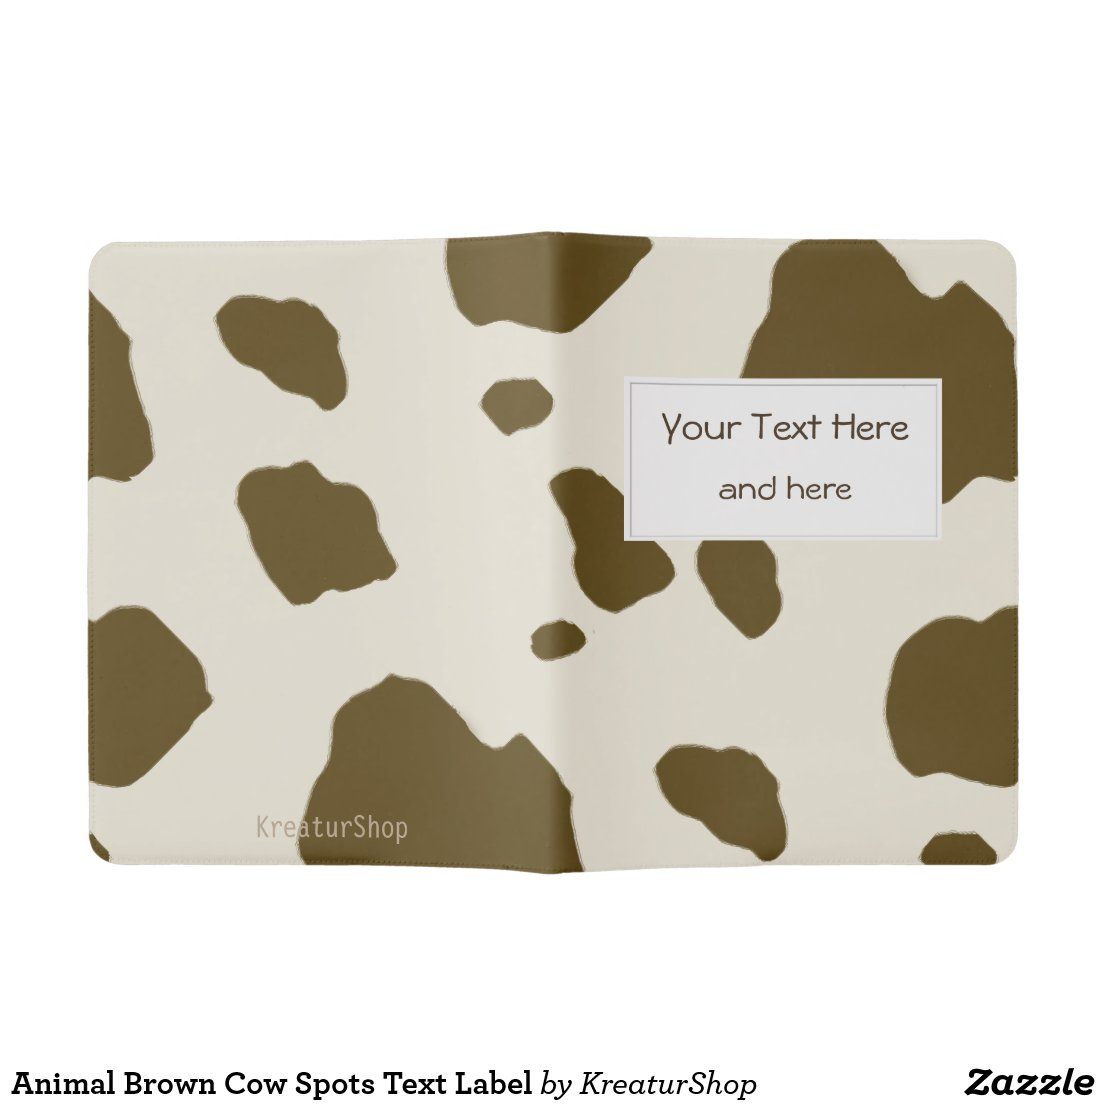 Animal Brown Cow Spots Text Label